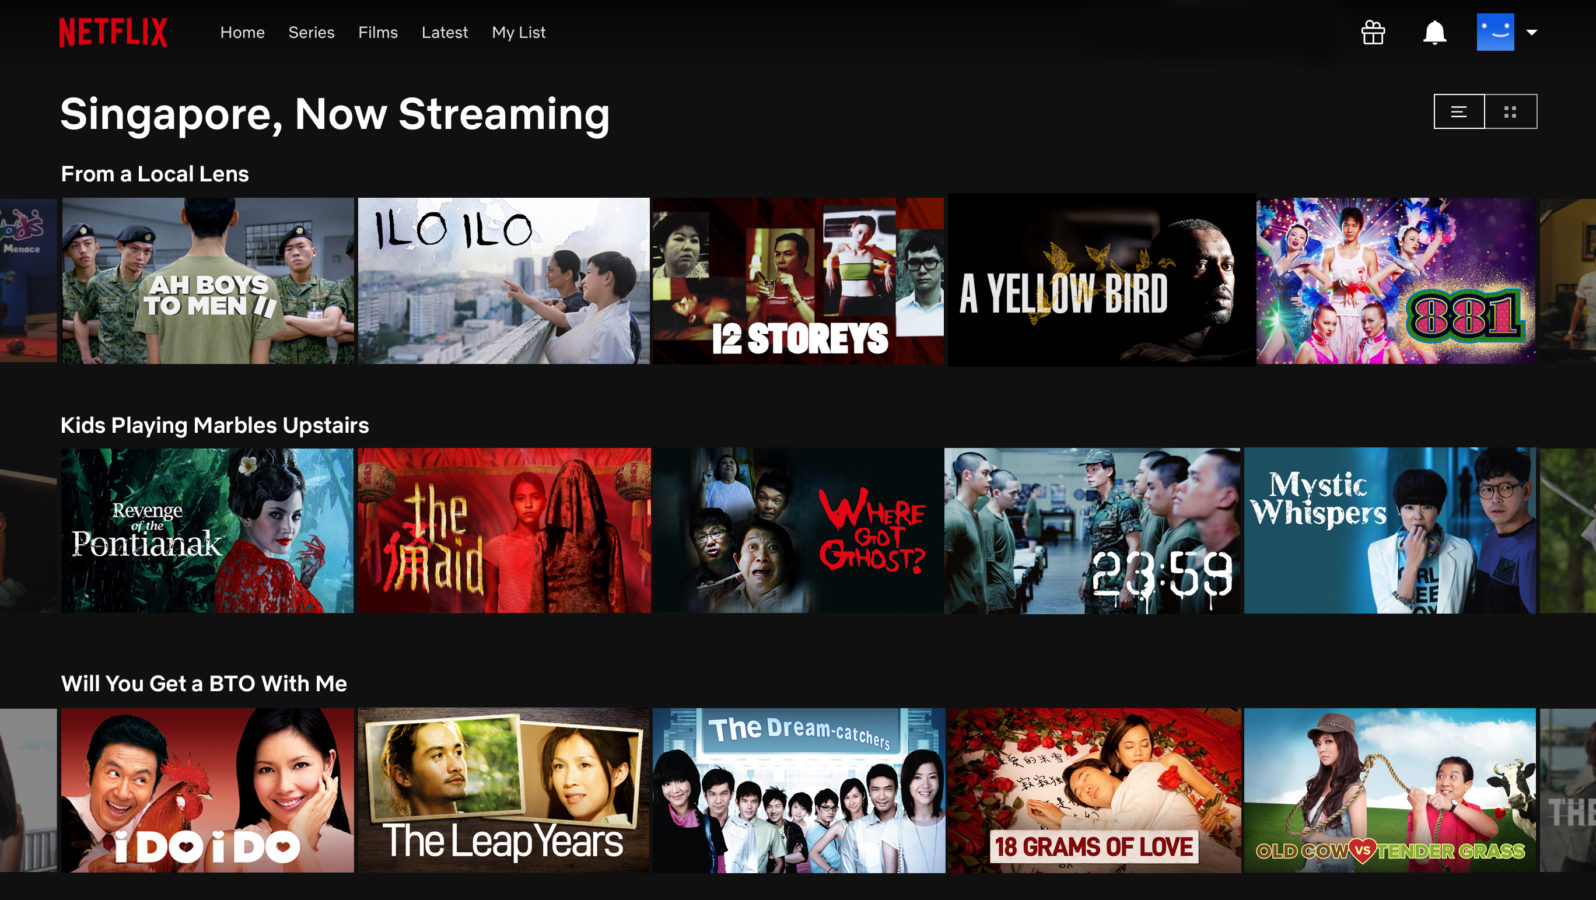 Netflix is dropping over 100 Singapore-made films and series this August